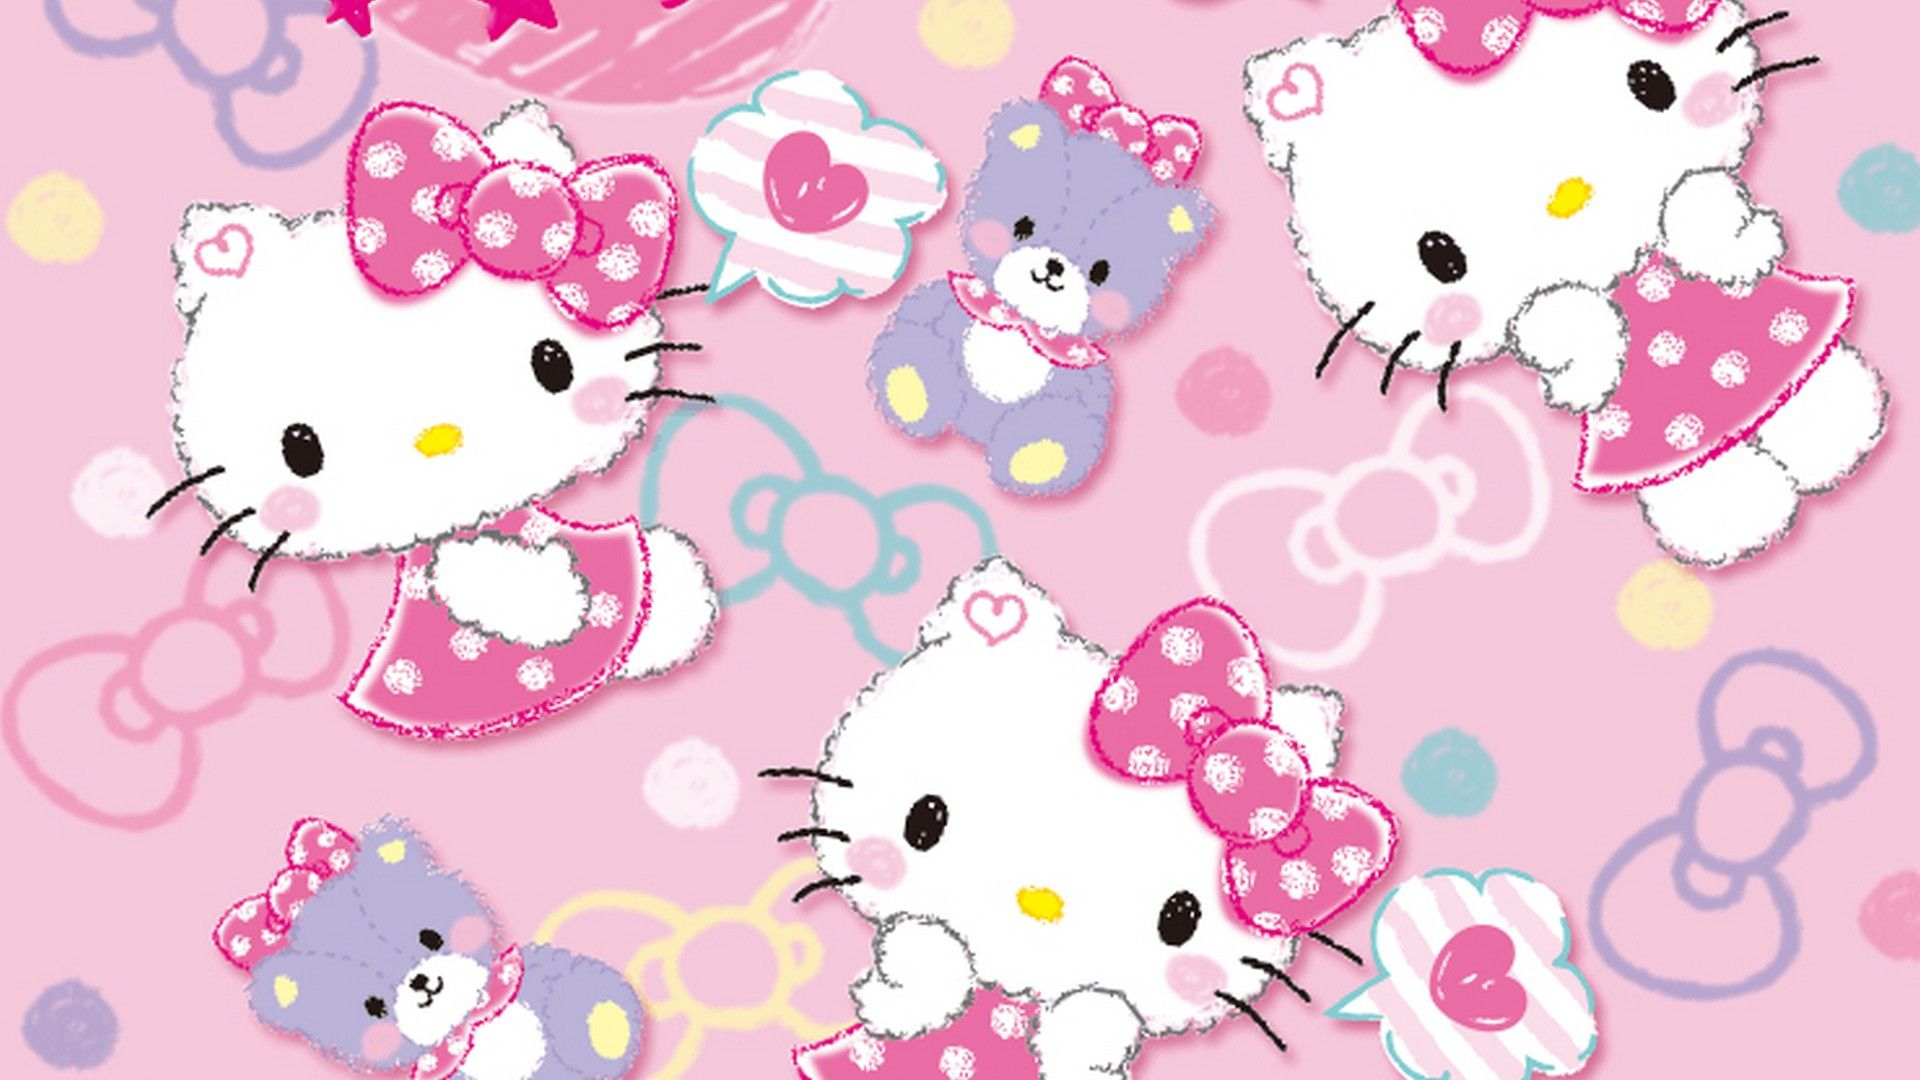 Hello Kitty Characters Background Wallpaper Hd 2021 Live Wallpaper Hd Hello Kitty Pictures Hello Kitty Backgrounds Hello Kitty Images